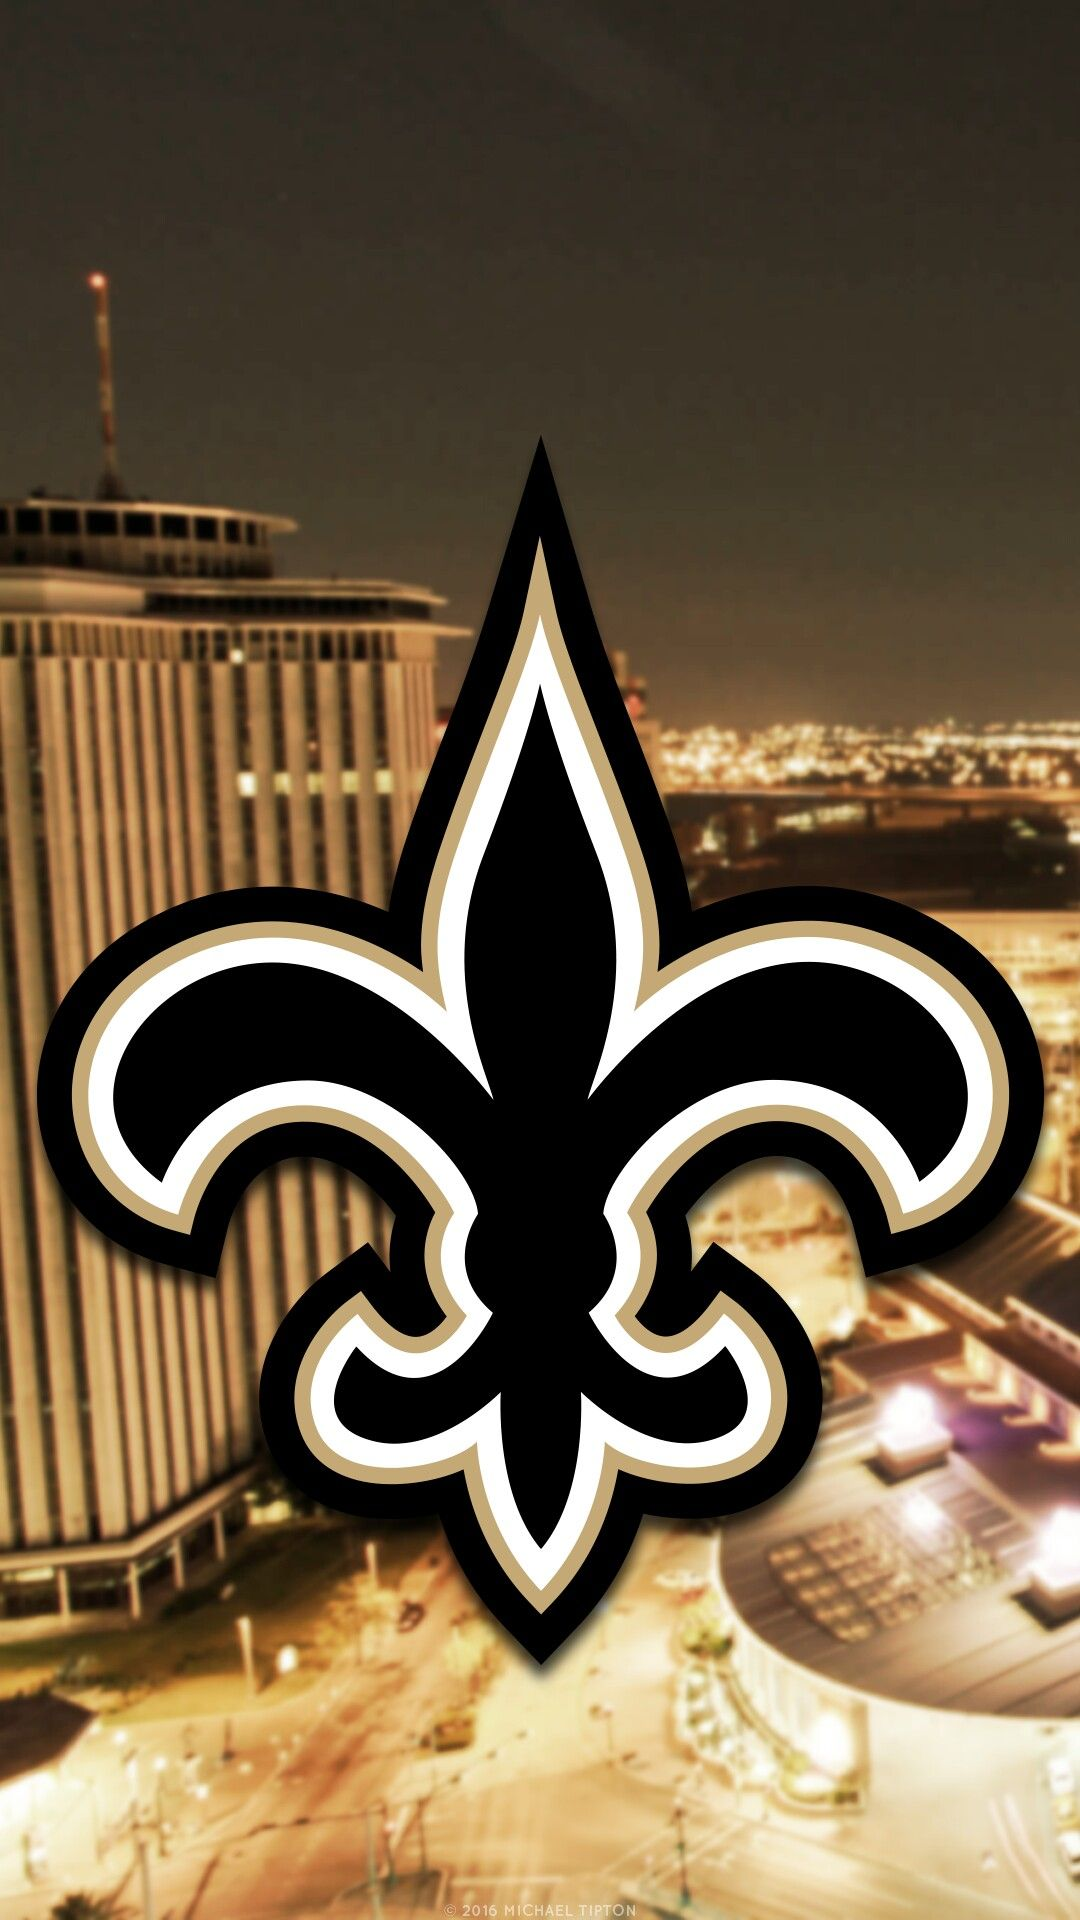 New Orleans Saints IPhone & Android Wallpaper. New